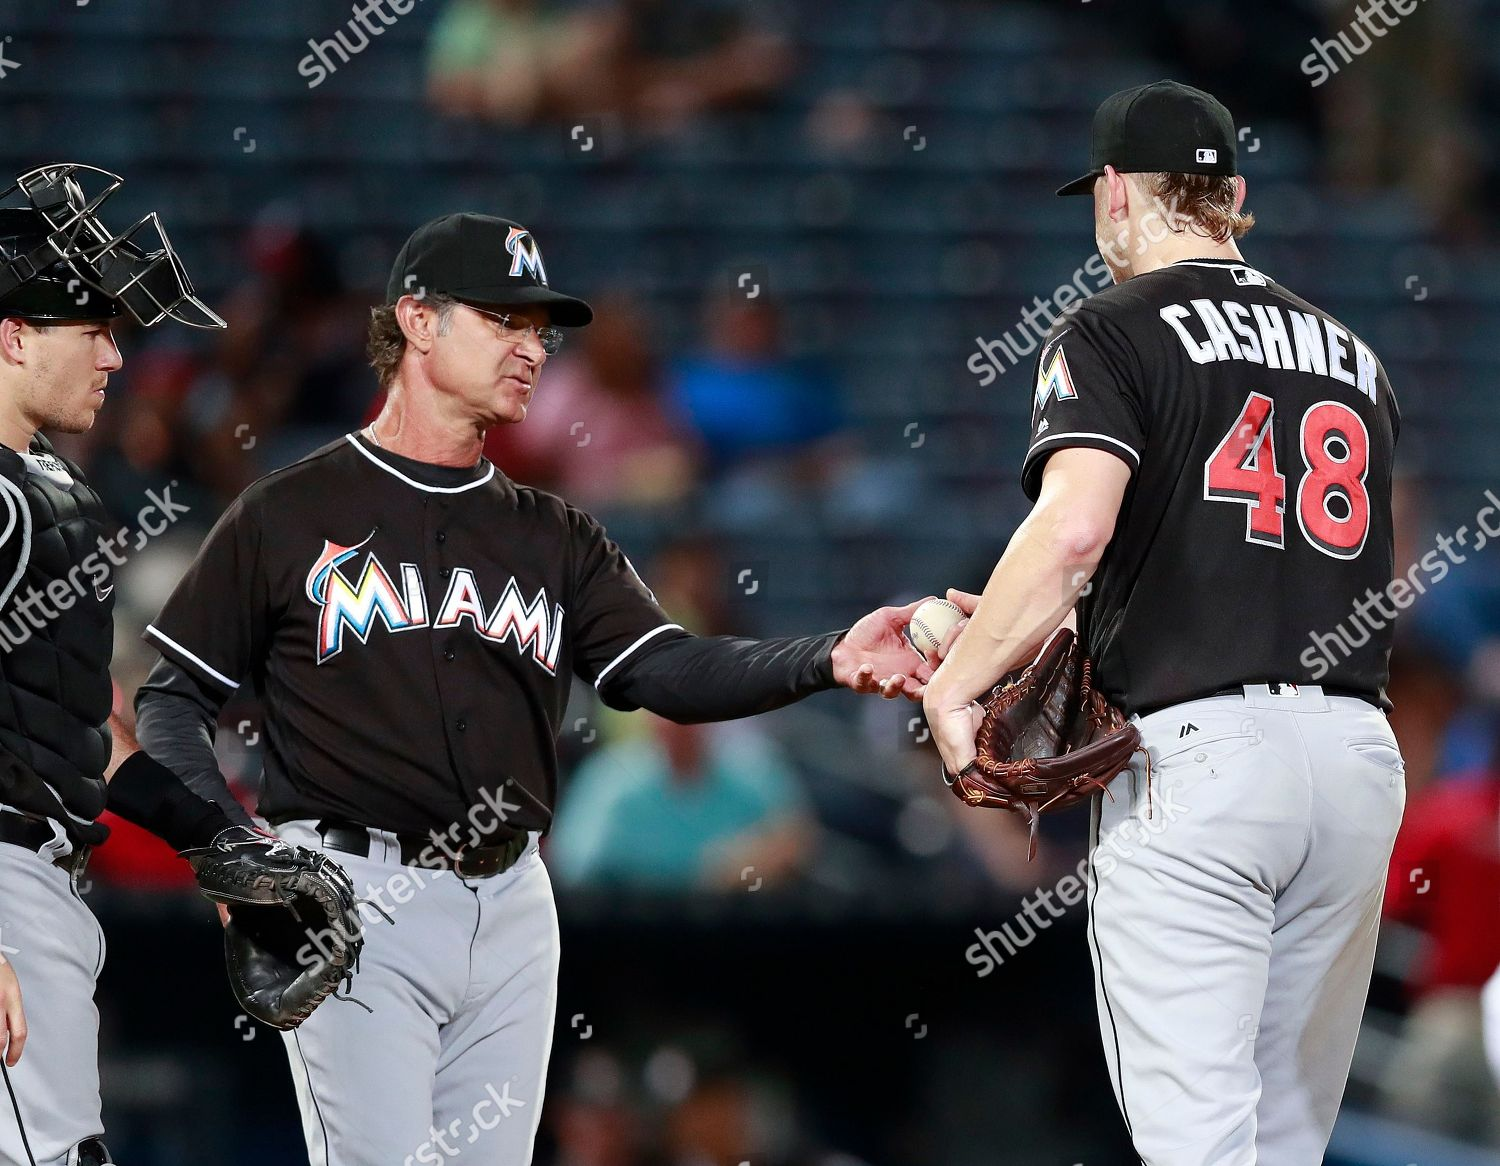 miami-marlins-v-atlanta-braves-mlb-baseb